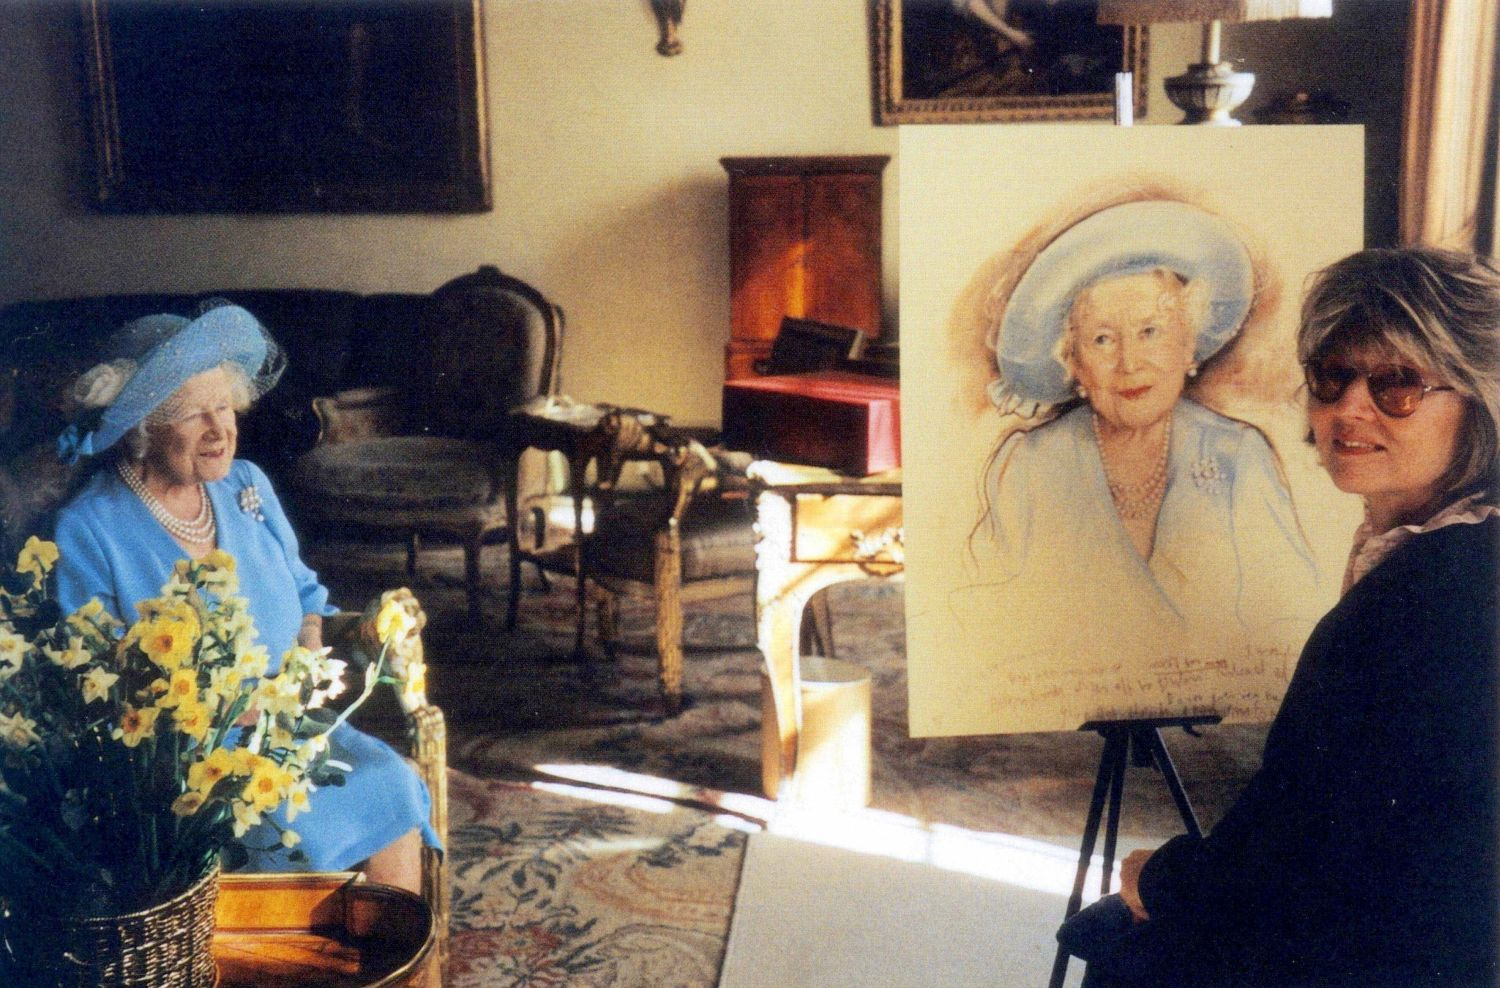 PHOTO: EAST NEWS/REX FEATURES Queen Mother at Clarence House with Polish artist Basia Hamilton - Mar 2001. The last portrait of the Queen Mother was completed just a month before her death. QUEEN MOTHER PORTRAIT BY BARBARA KACZMAROWSKA HAMILTON - 20 JAN 2002